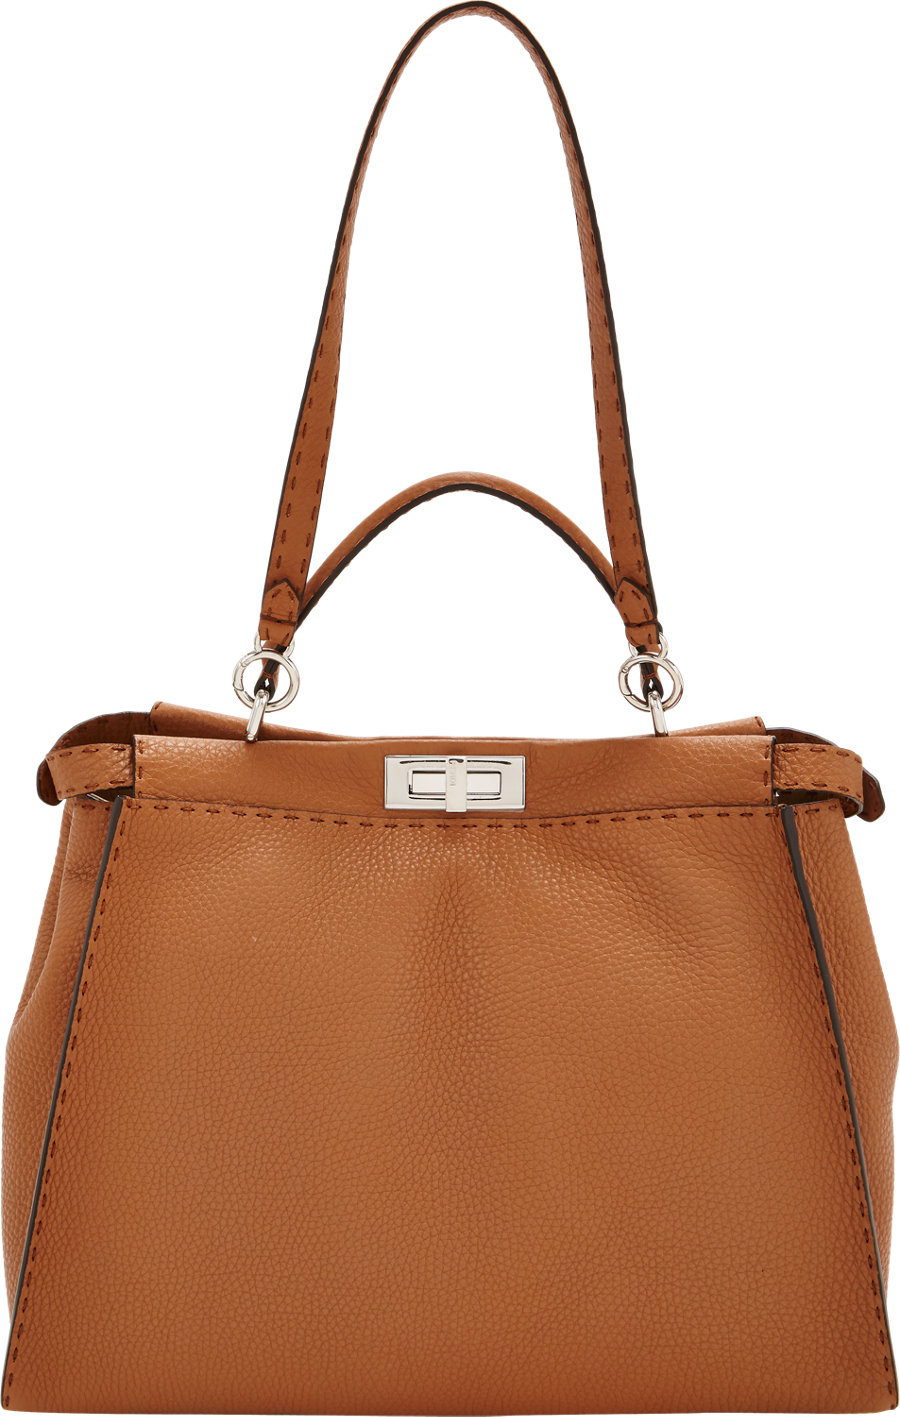 bce5404db1 Fendi Medium Selleria Peekaboo Bag in Brown - Lyst